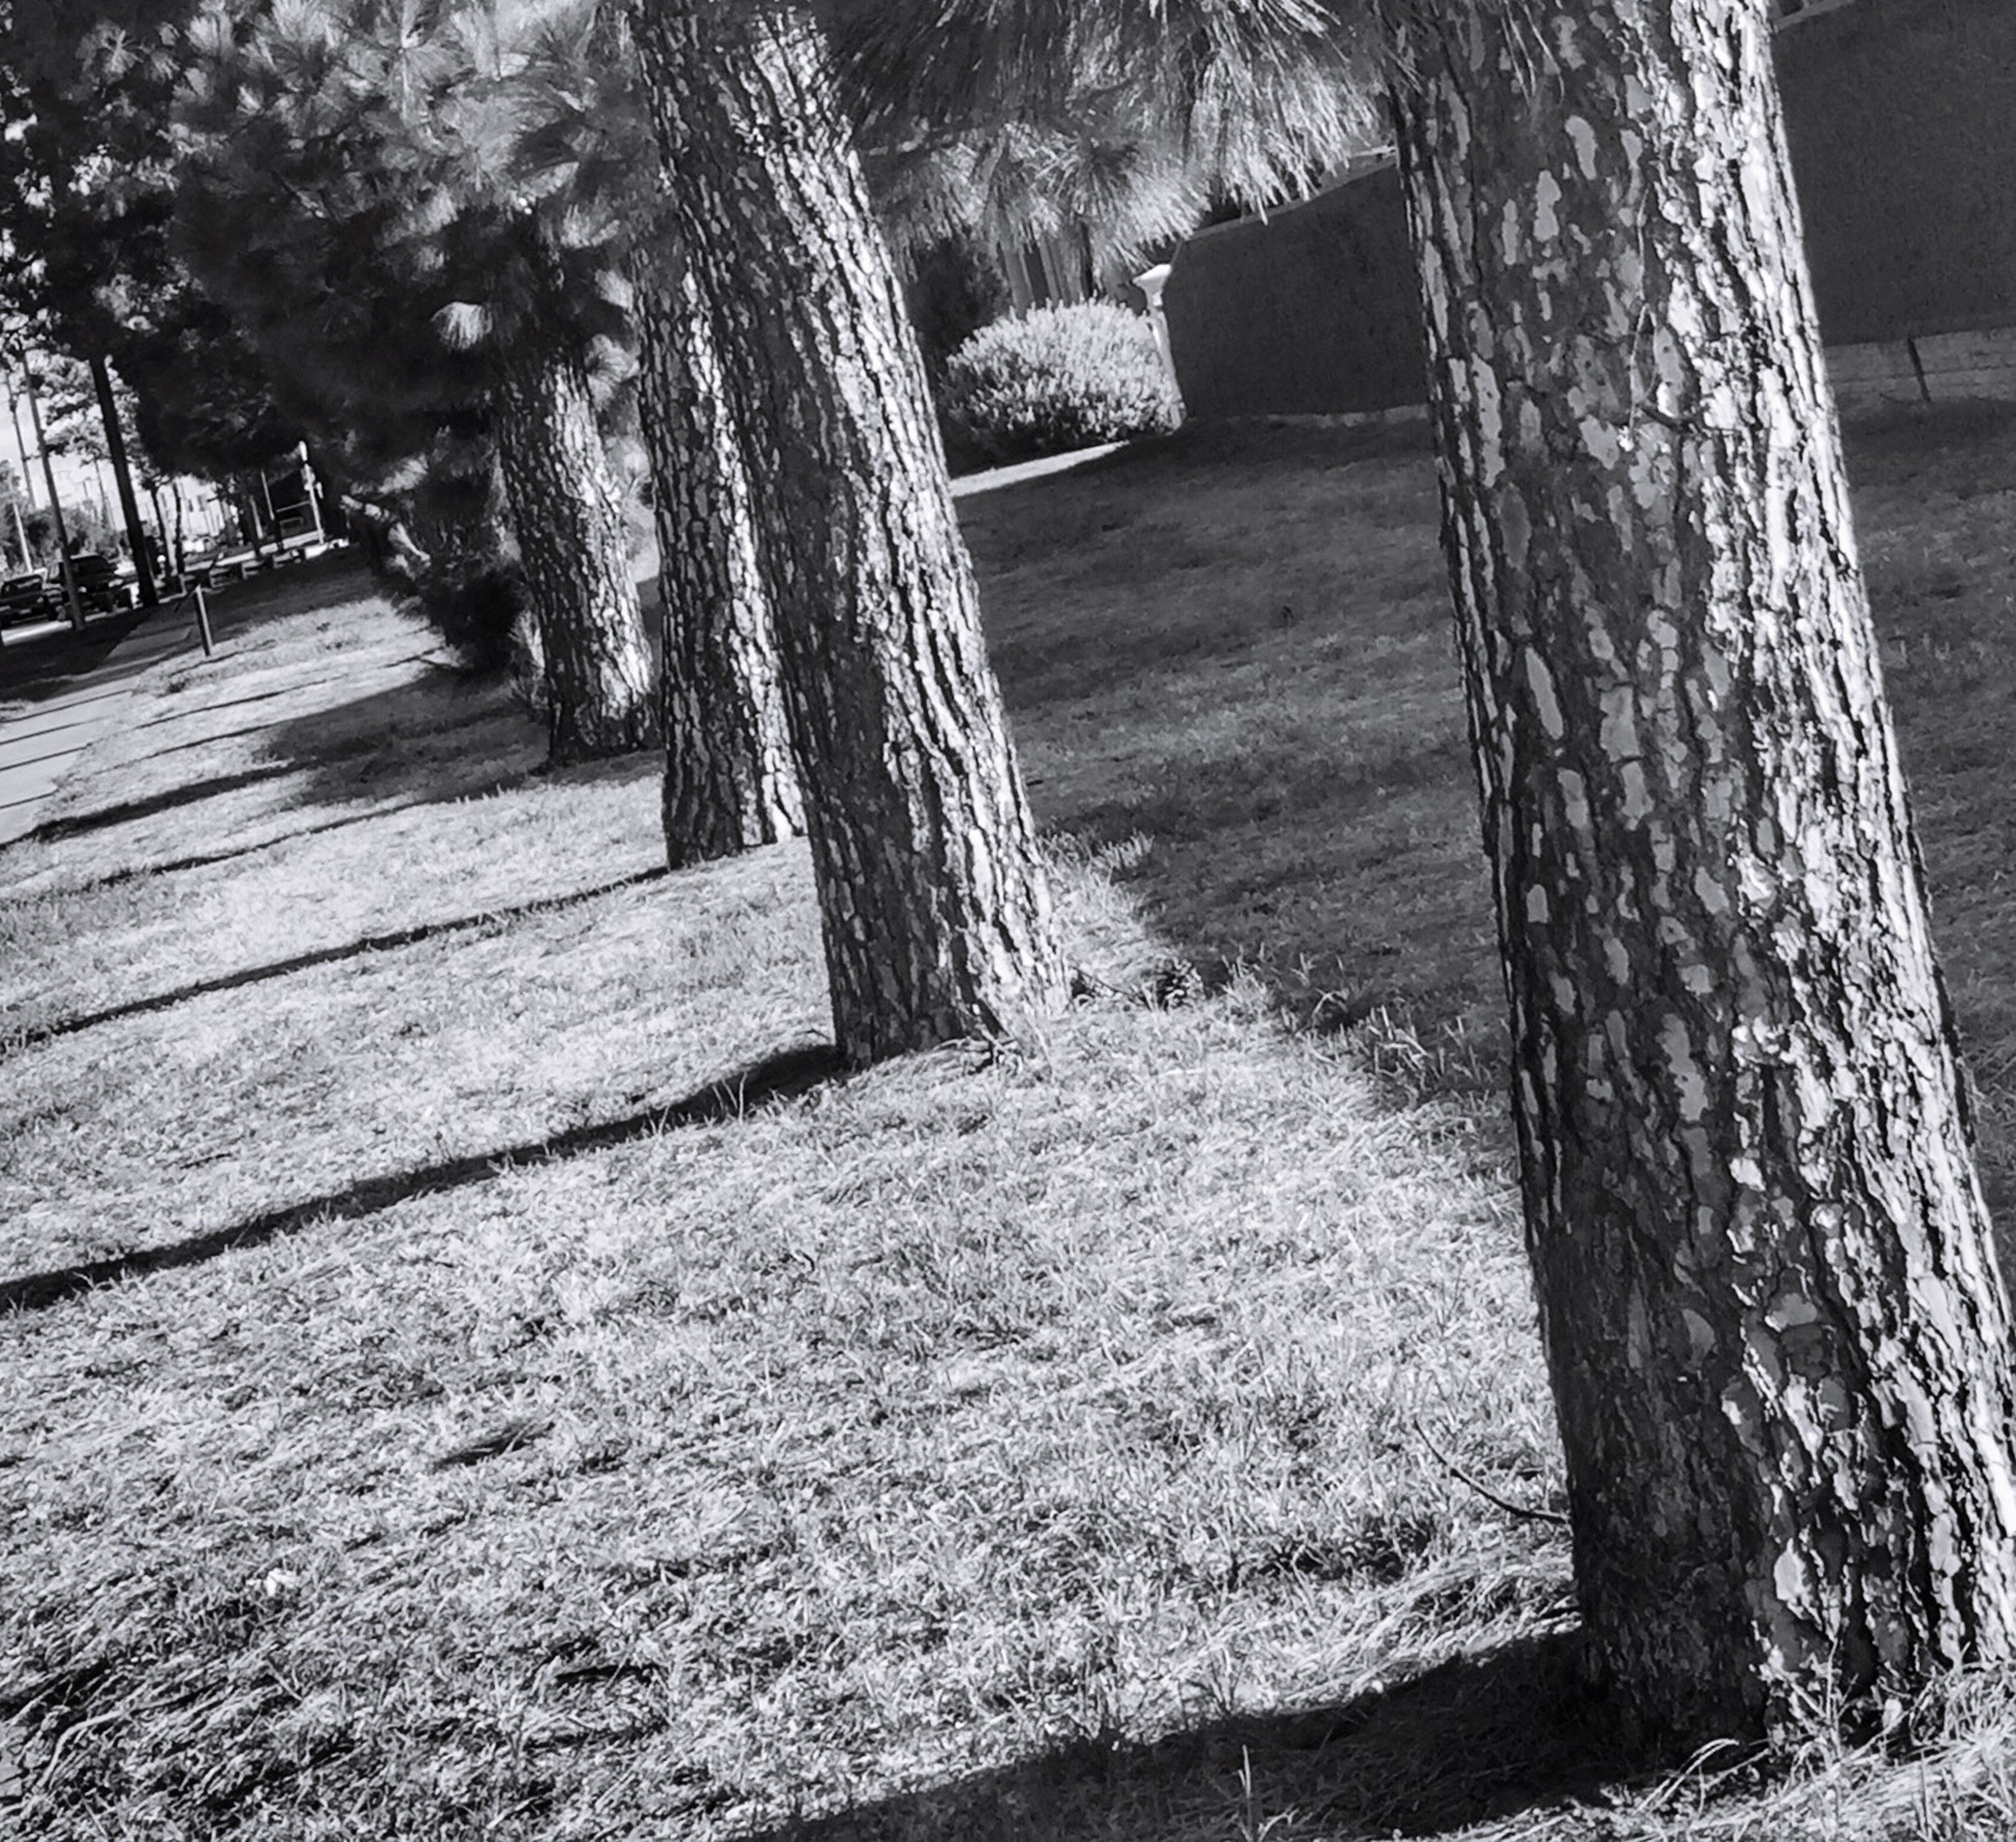 tree, tree trunk, shadow, sunlight, park - man made space, built structure, wood - material, footpath, day, growth, nature, the way forward, outdoors, steps, no people, architecture, stone material, tranquility, grass, walkway